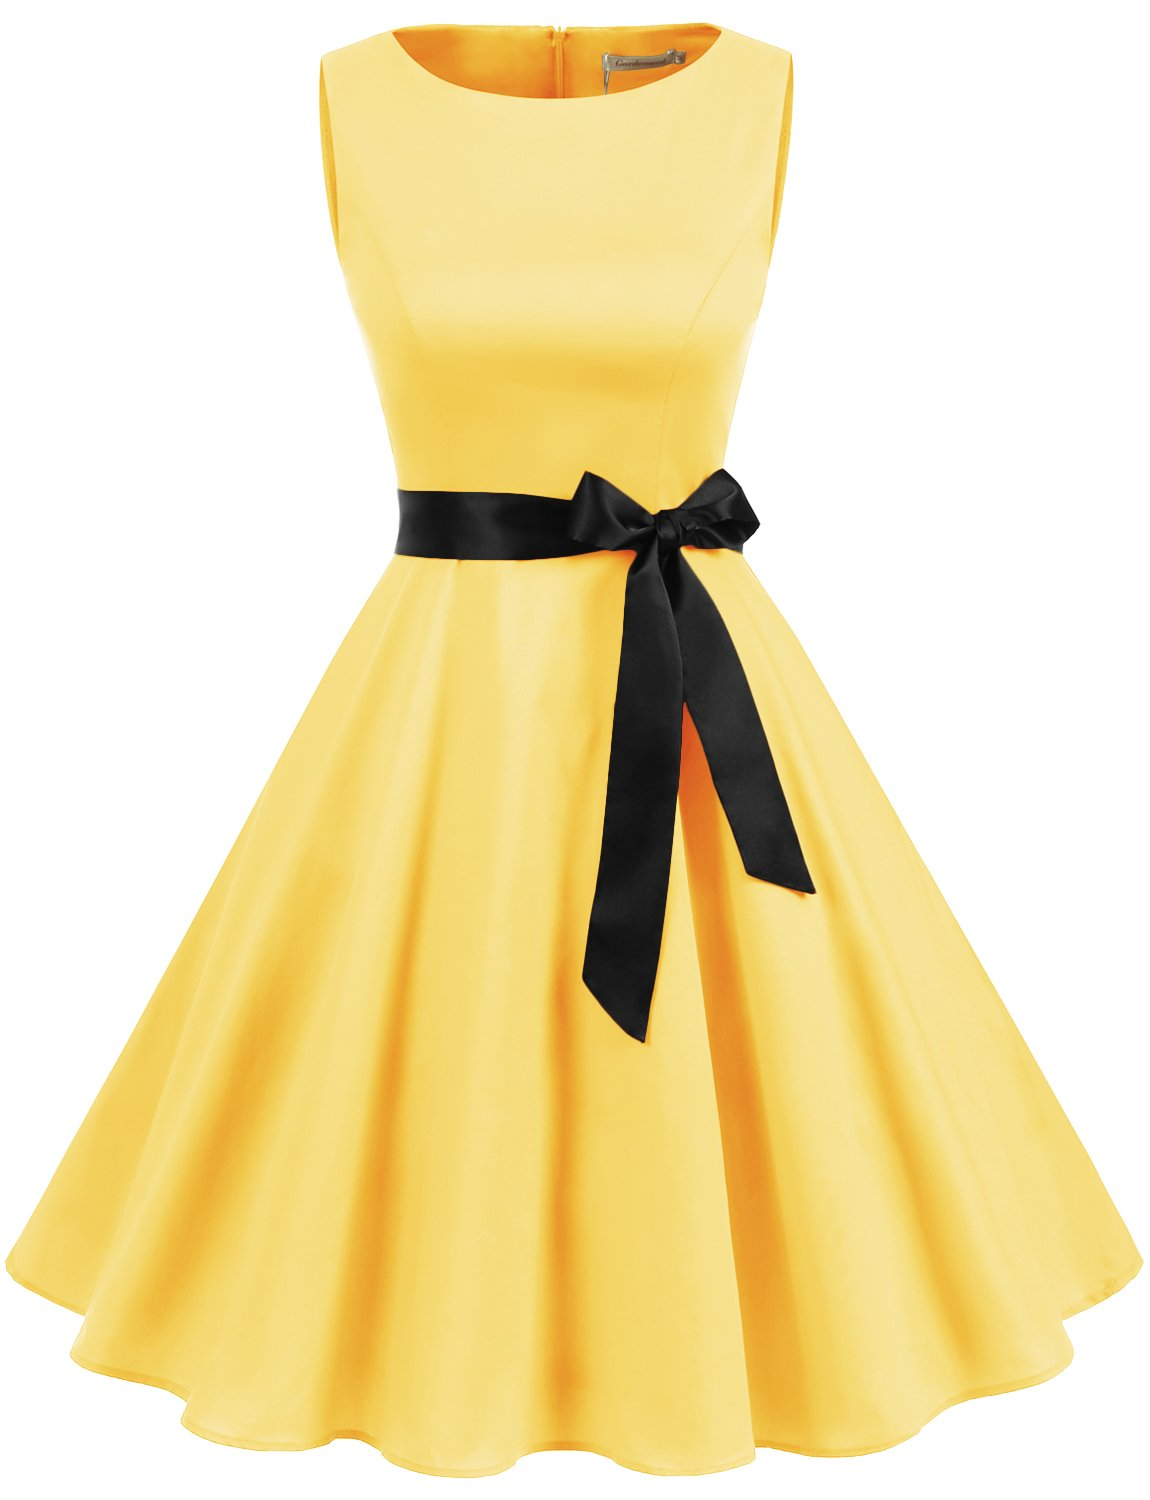 Gardenwed Women's Vintage 1950s Retro Rockabilly Swing Cocktail Dresses with Belt Yellow XL